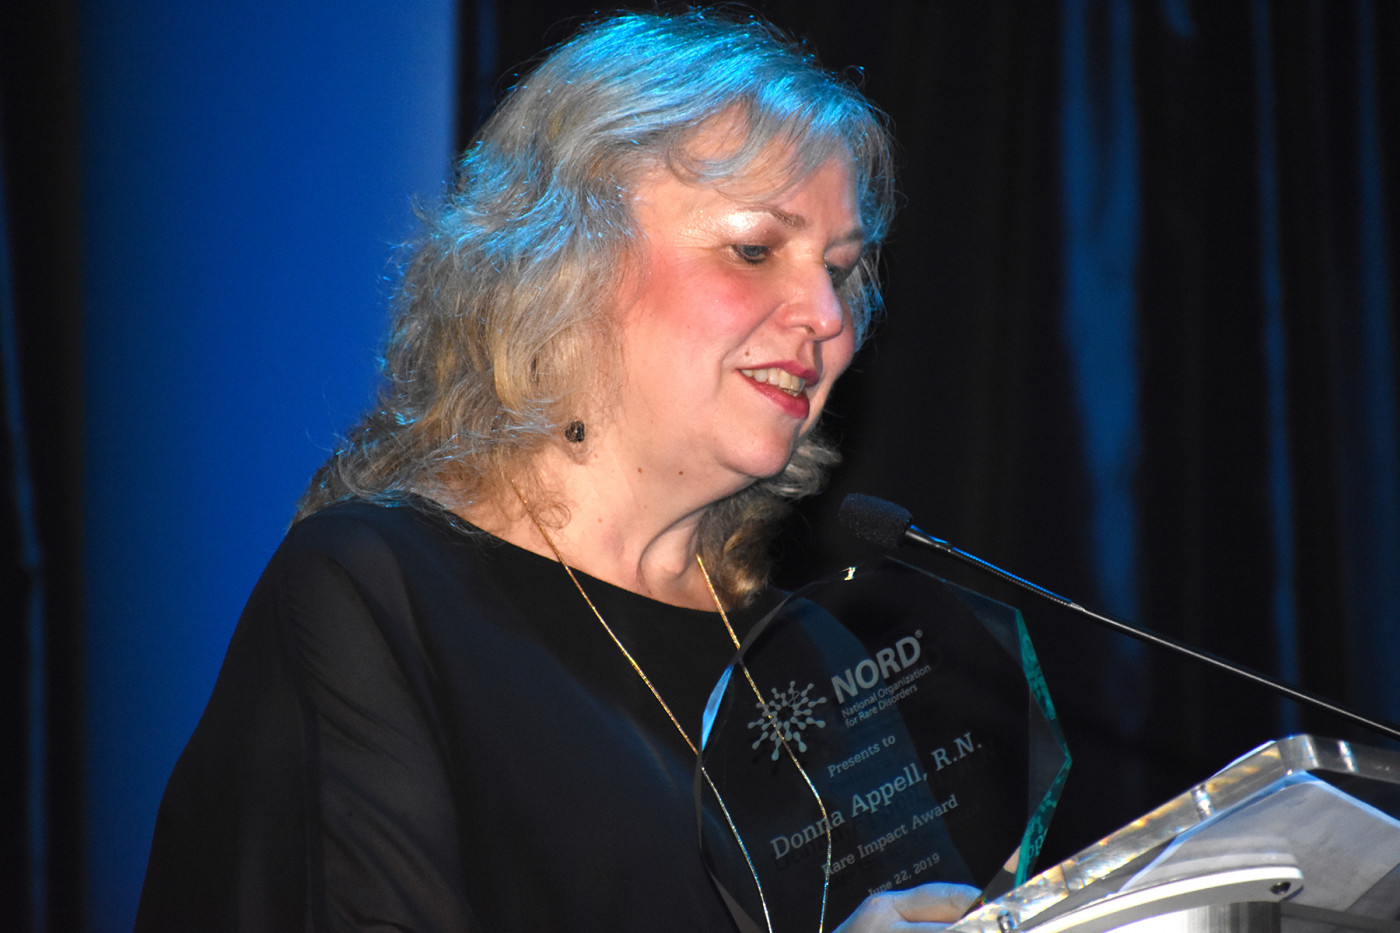 Amber Michaels Forum nord honors industry, patient advocates at rare impact